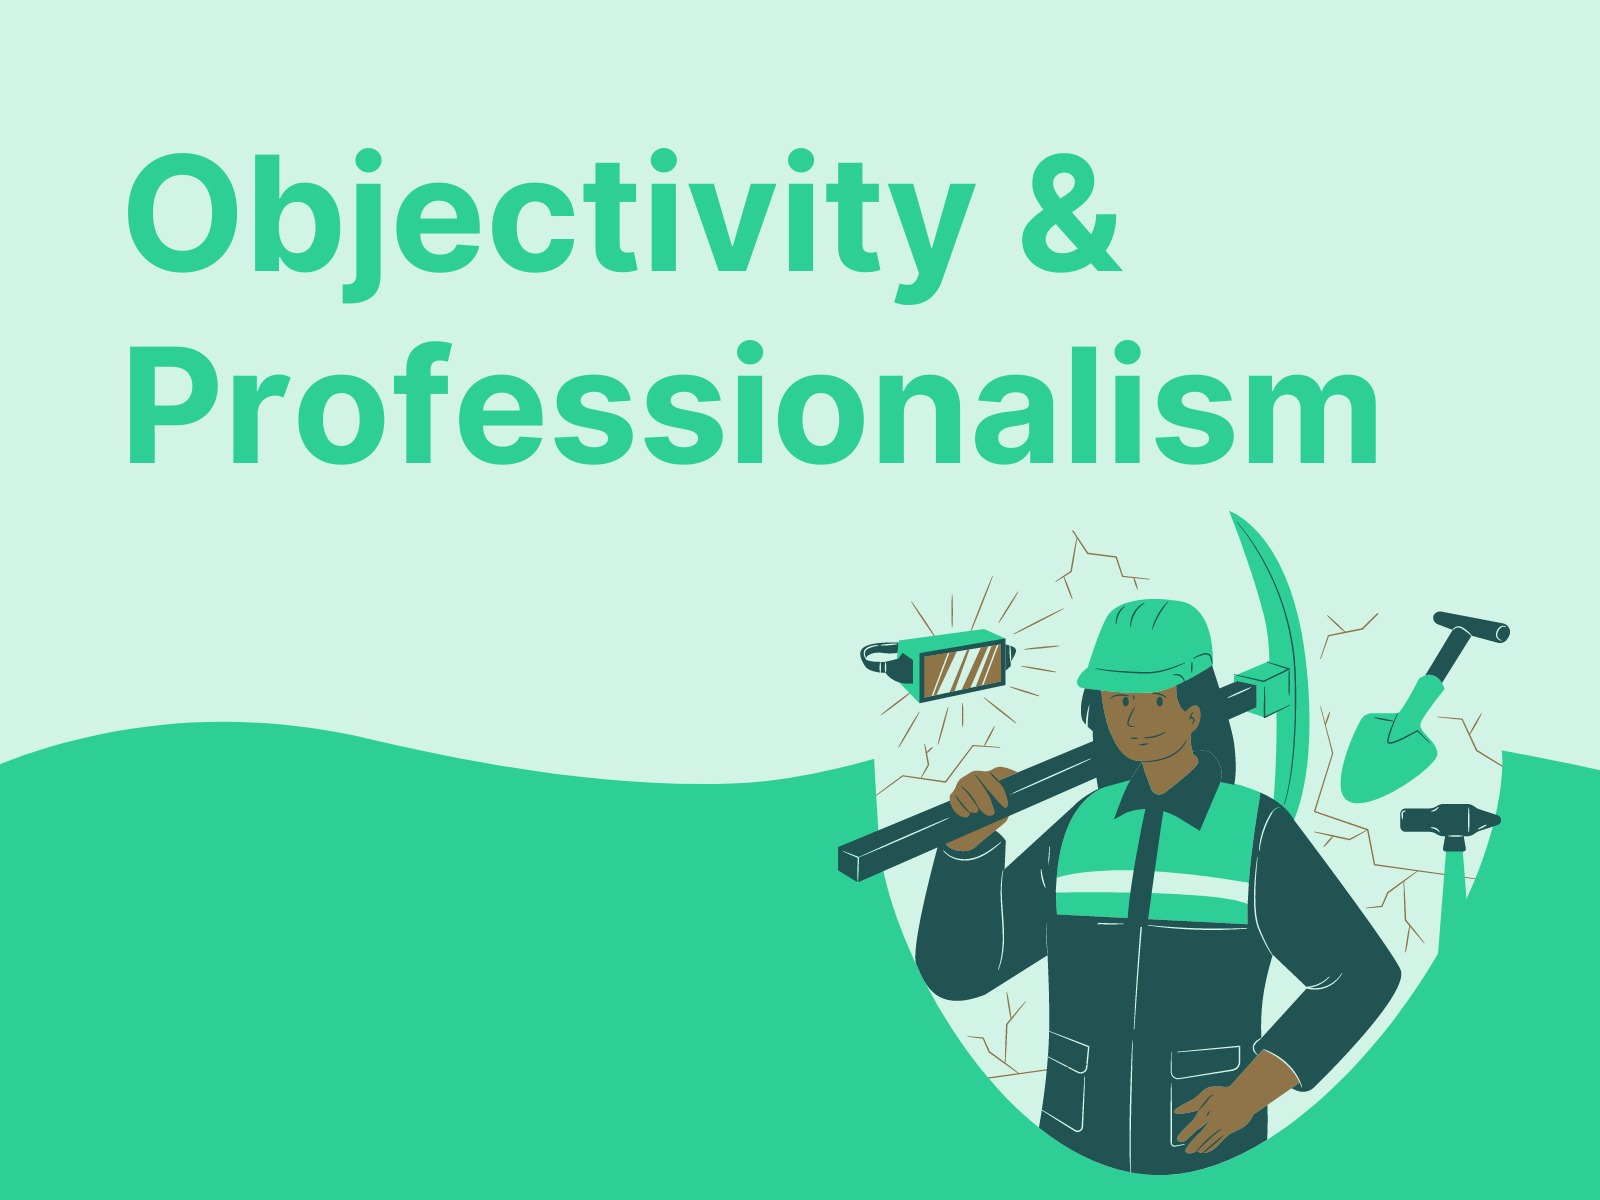 Objectivity and Professionalism